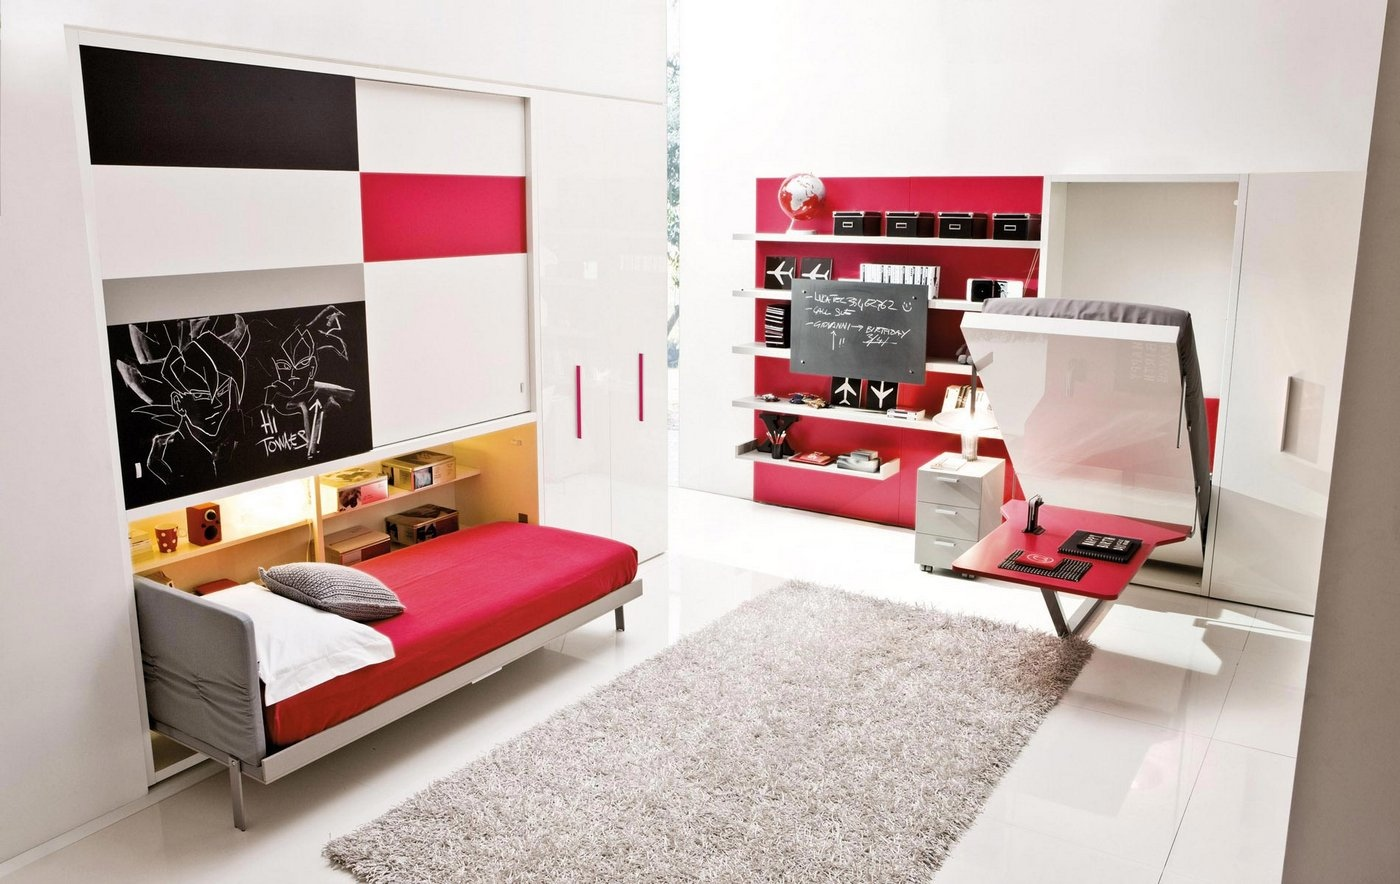 transformable space saving kids rooms. Black Bedroom Furniture Sets. Home Design Ideas